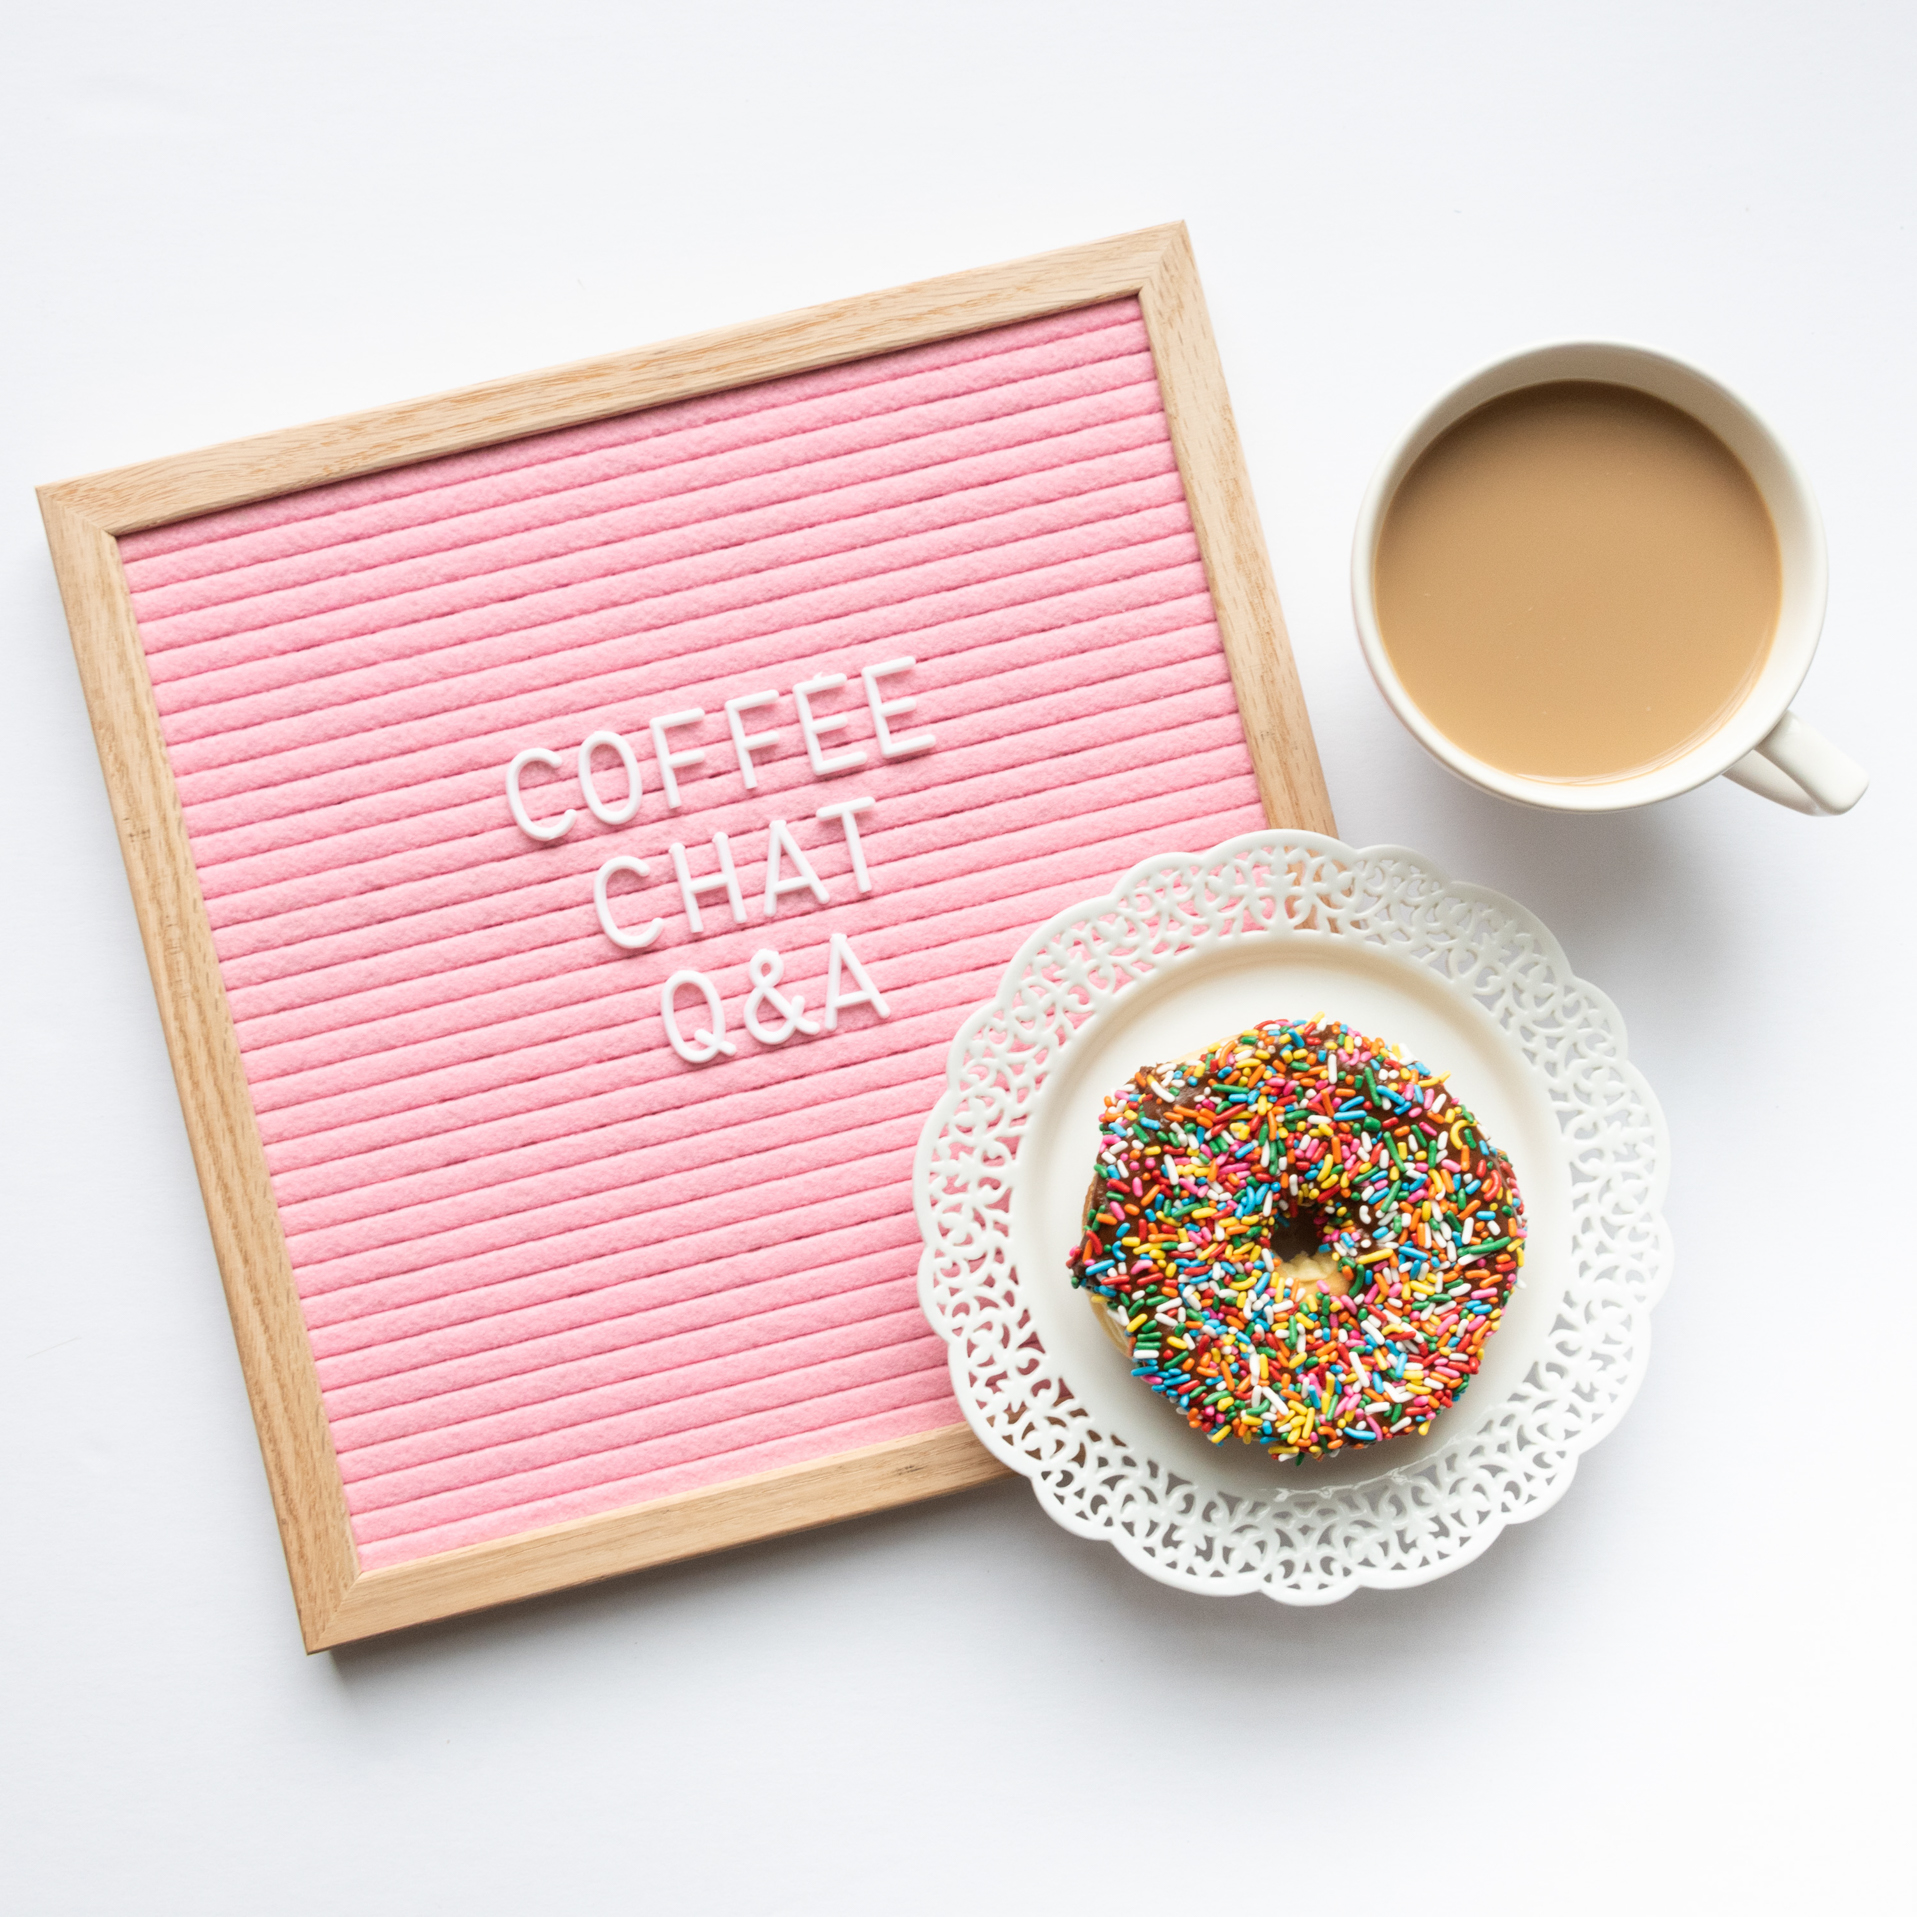 flat lay with a letter board, coffee cup, and donut, photographed by jamie bannon photography.